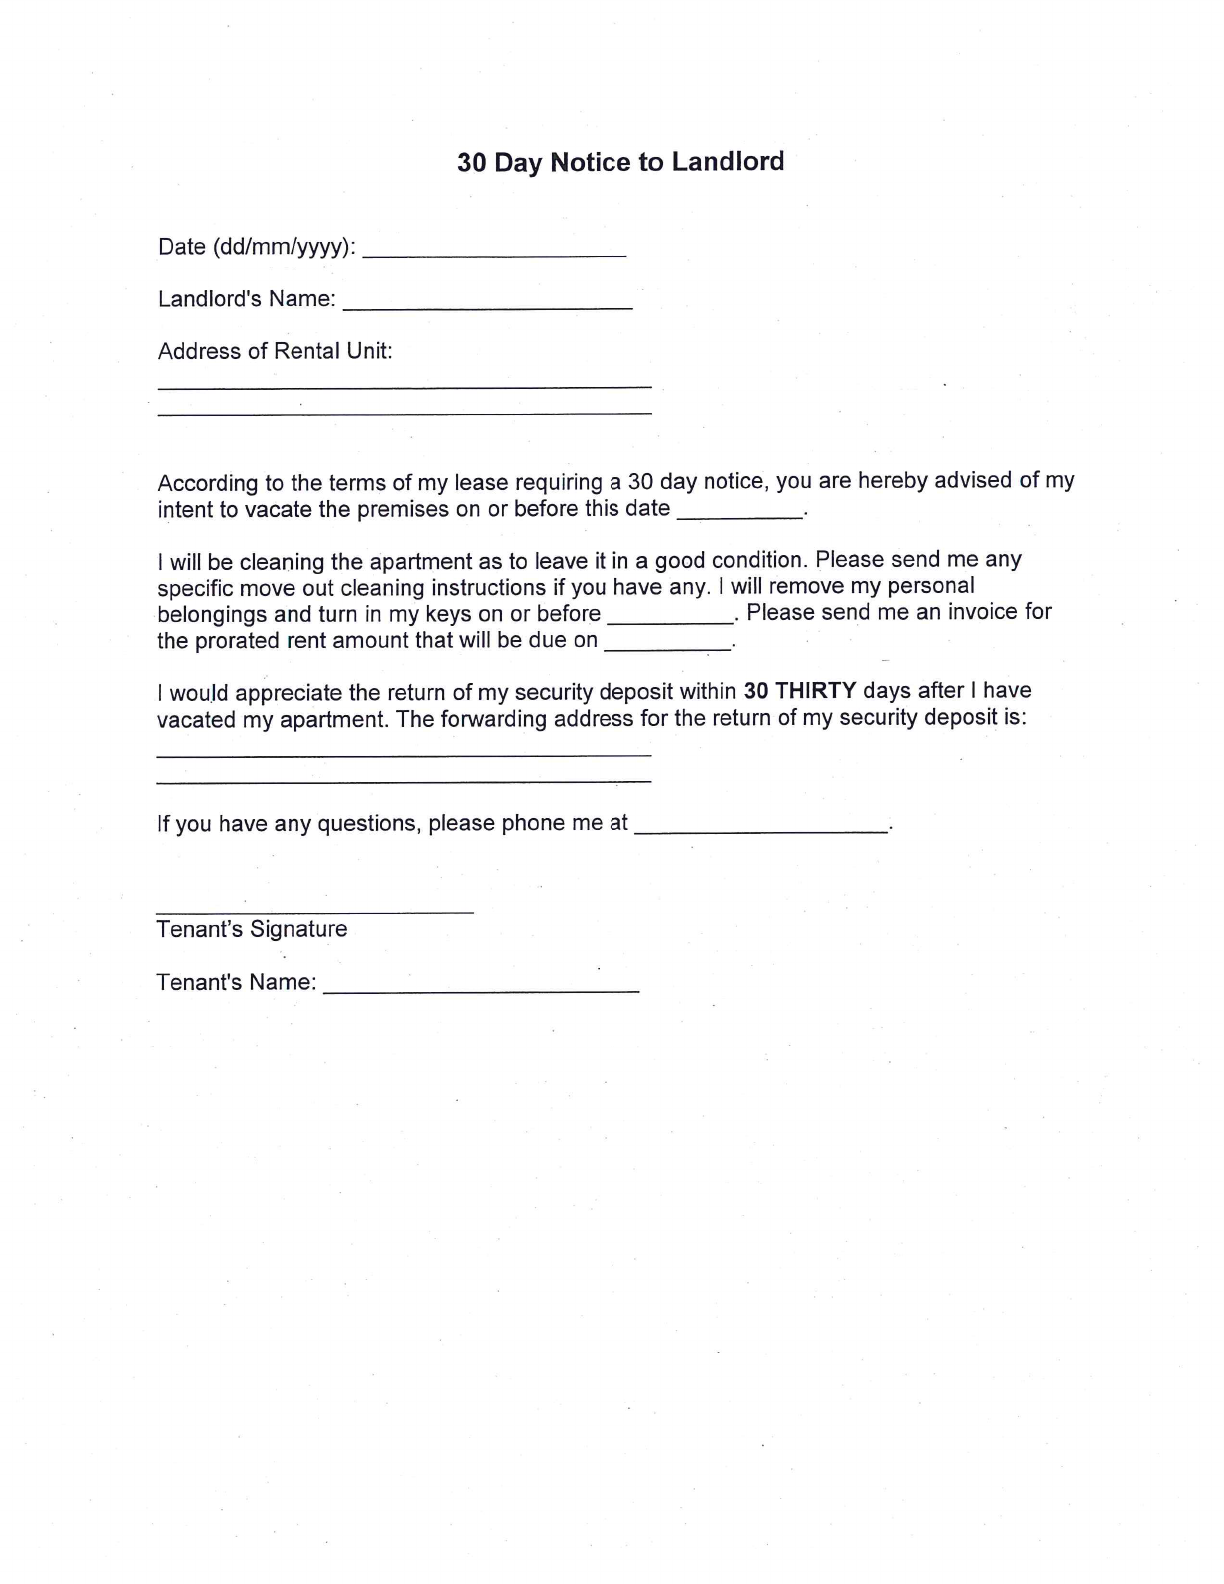 how to write a 30 day notice to a landlord If you are renting a house and intending to move out, you will have to let your landlord know about your plans through a 30 day notice letter to landlord.